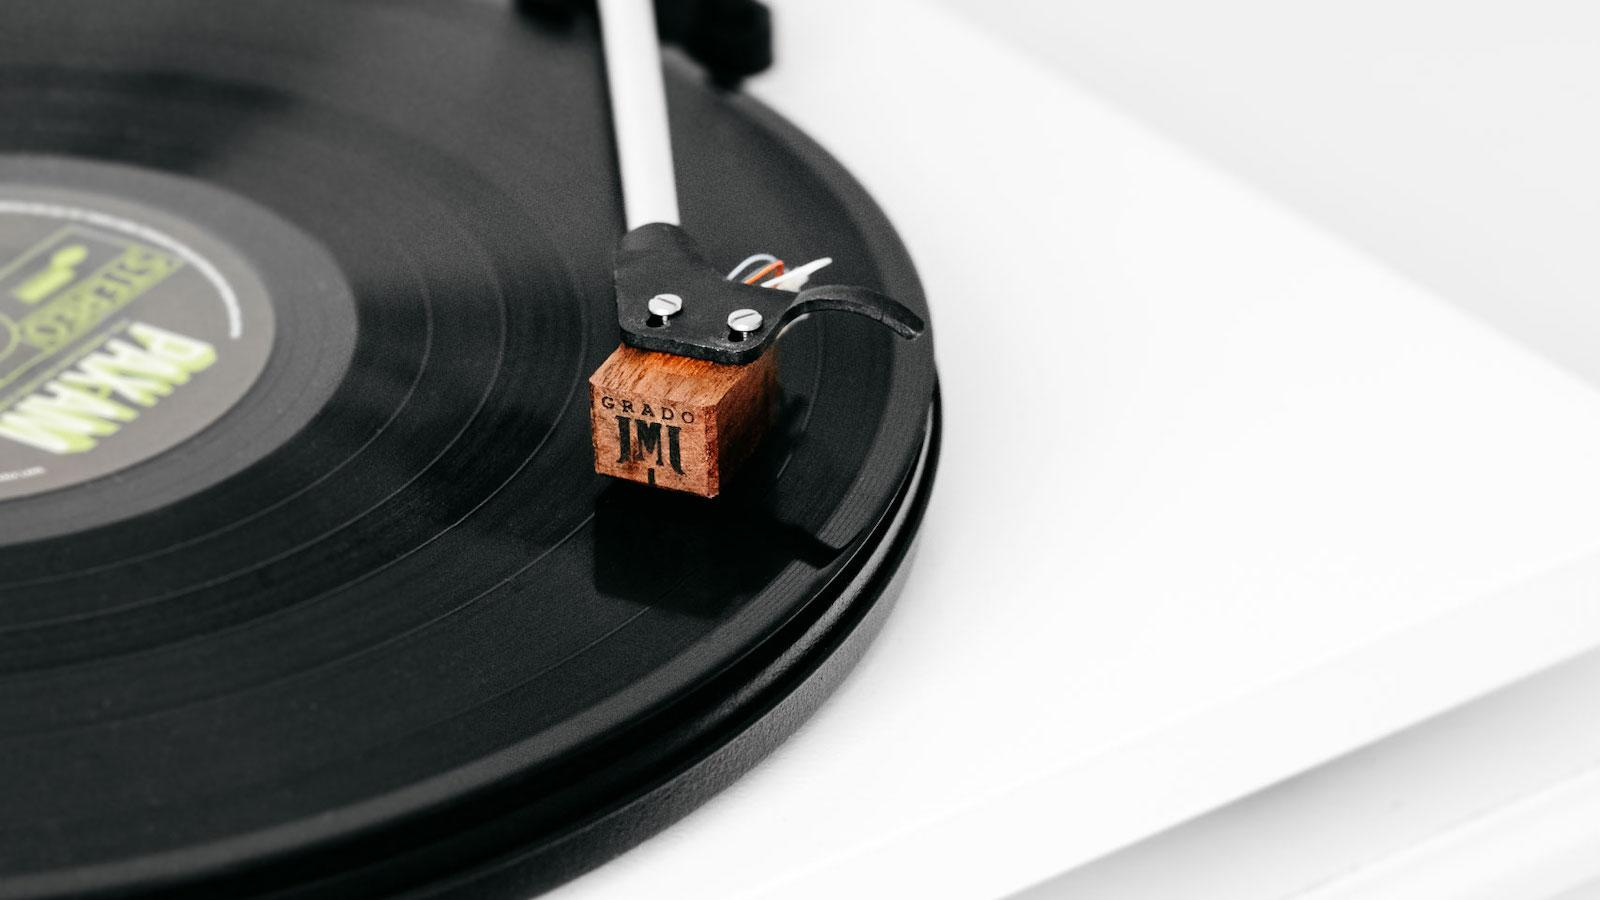 Grado Timbre Cartridge on Turntable